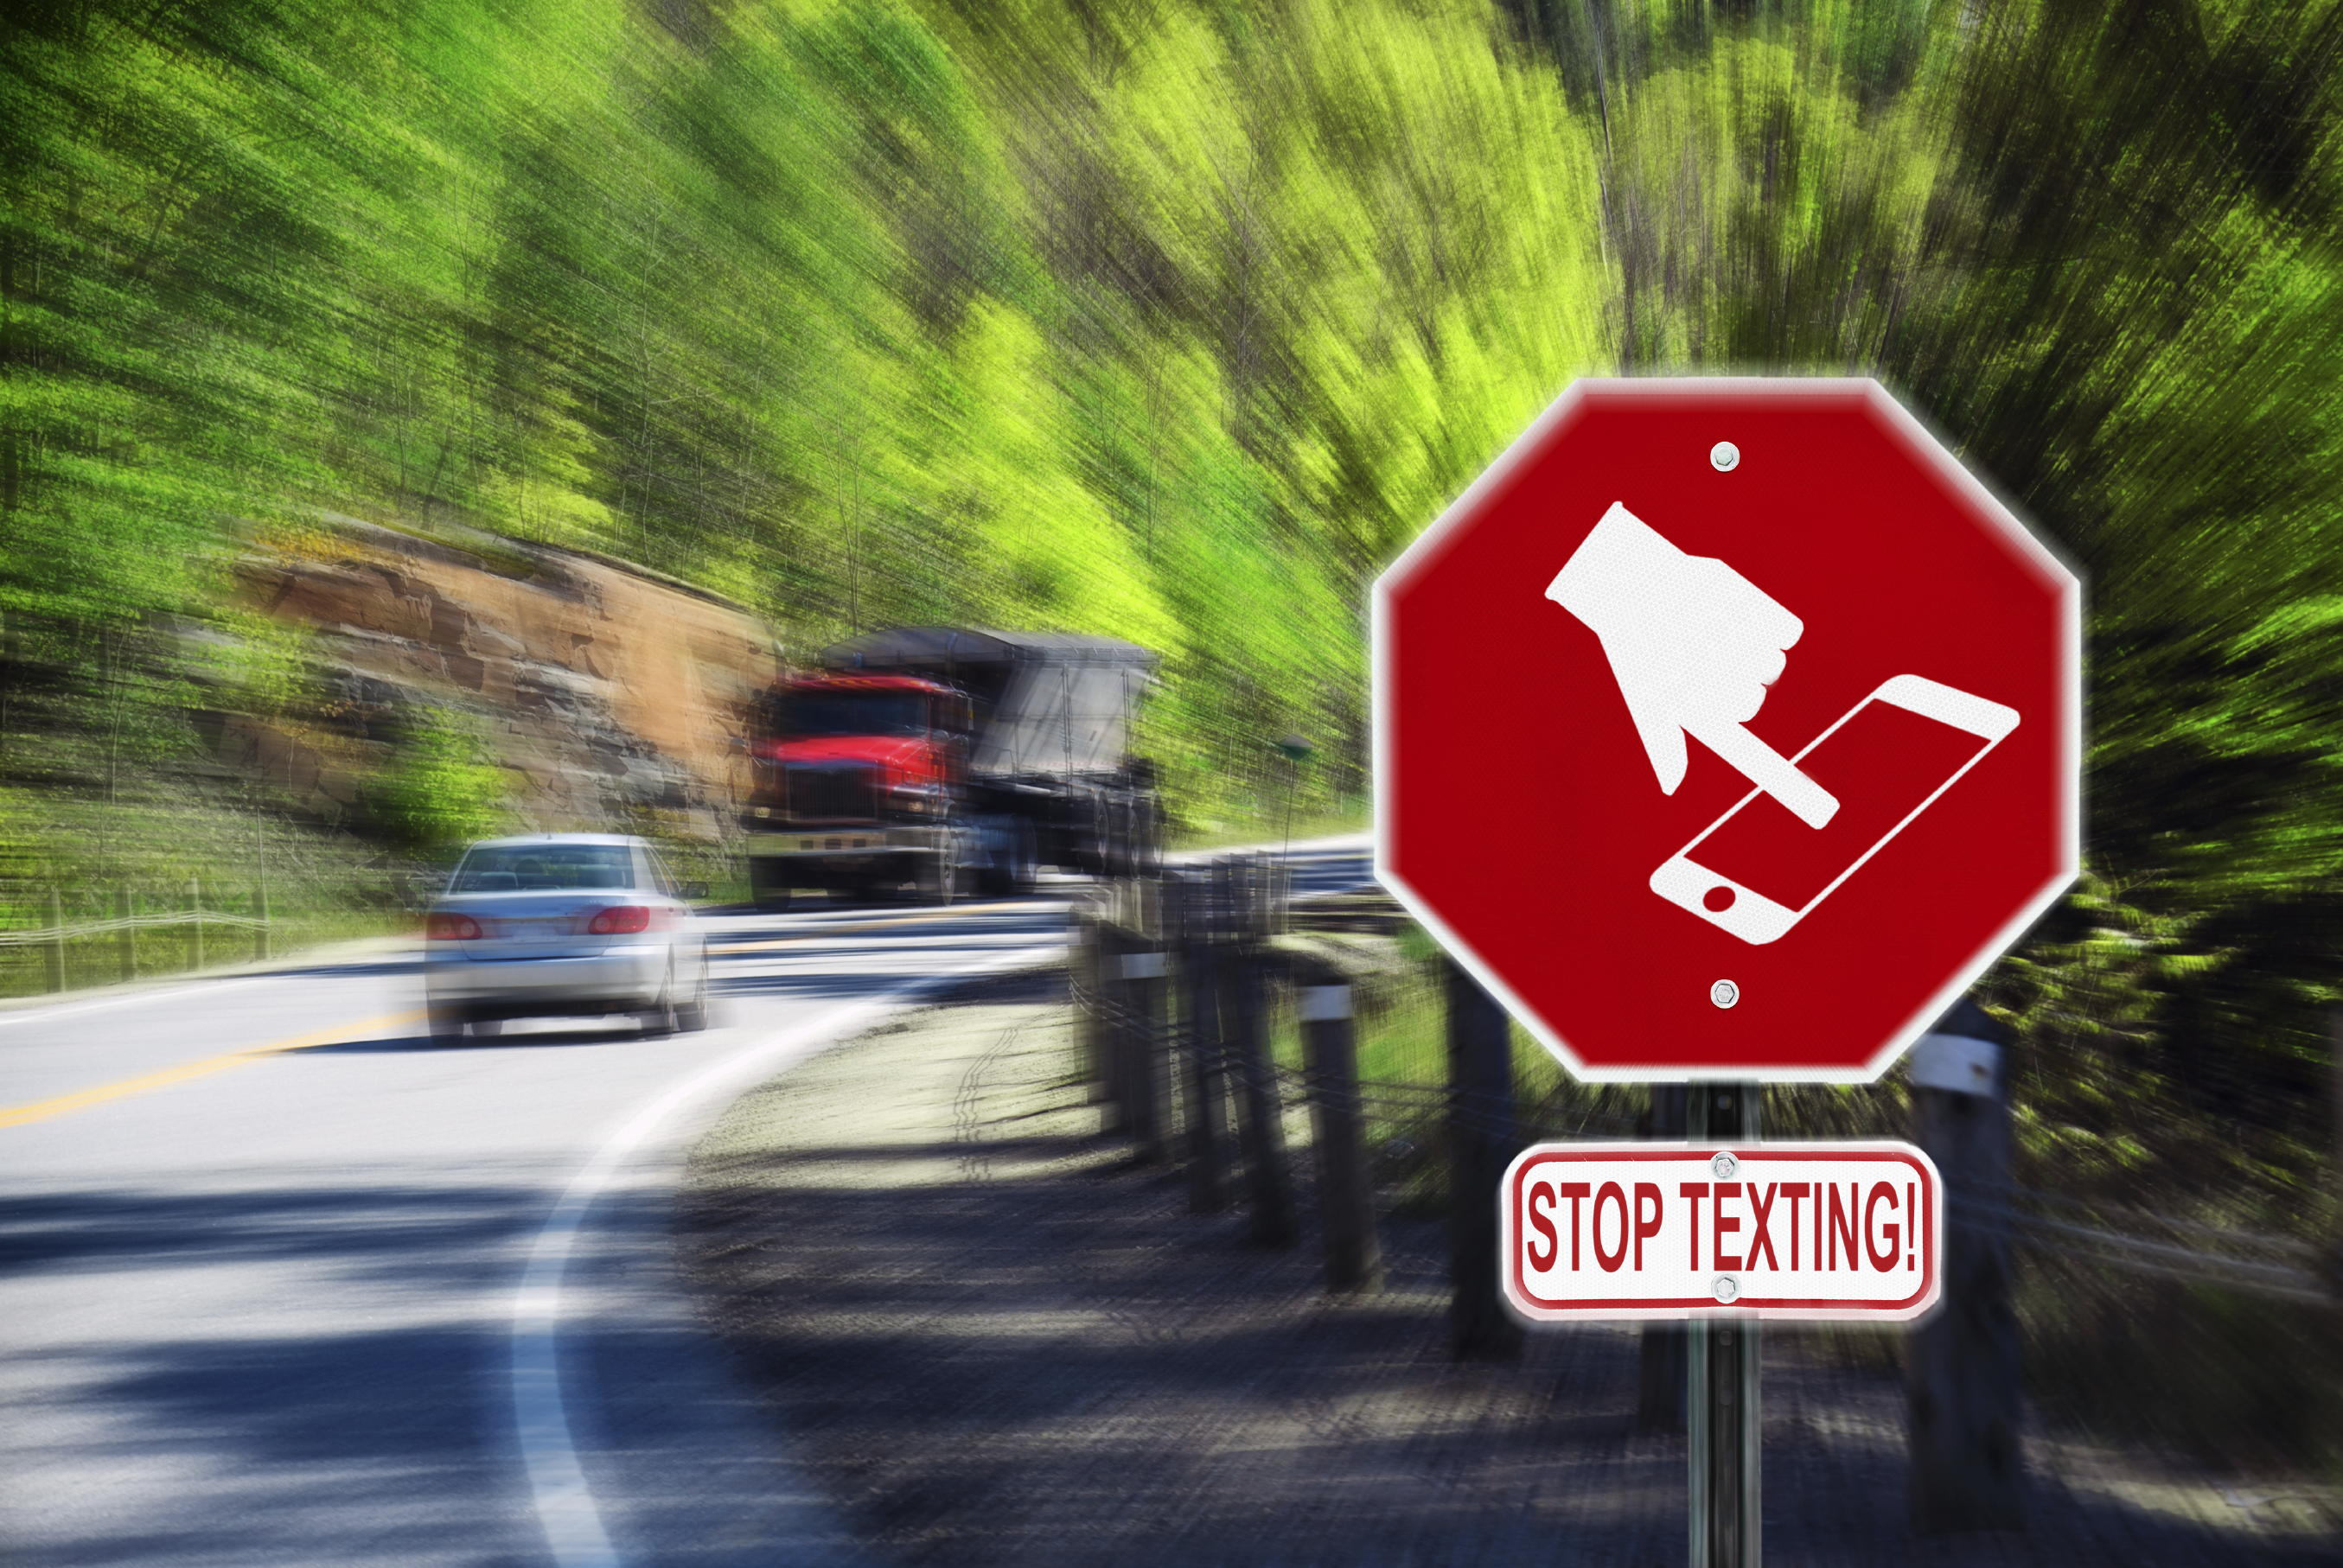 Texting while driving: Does banning it make a difference